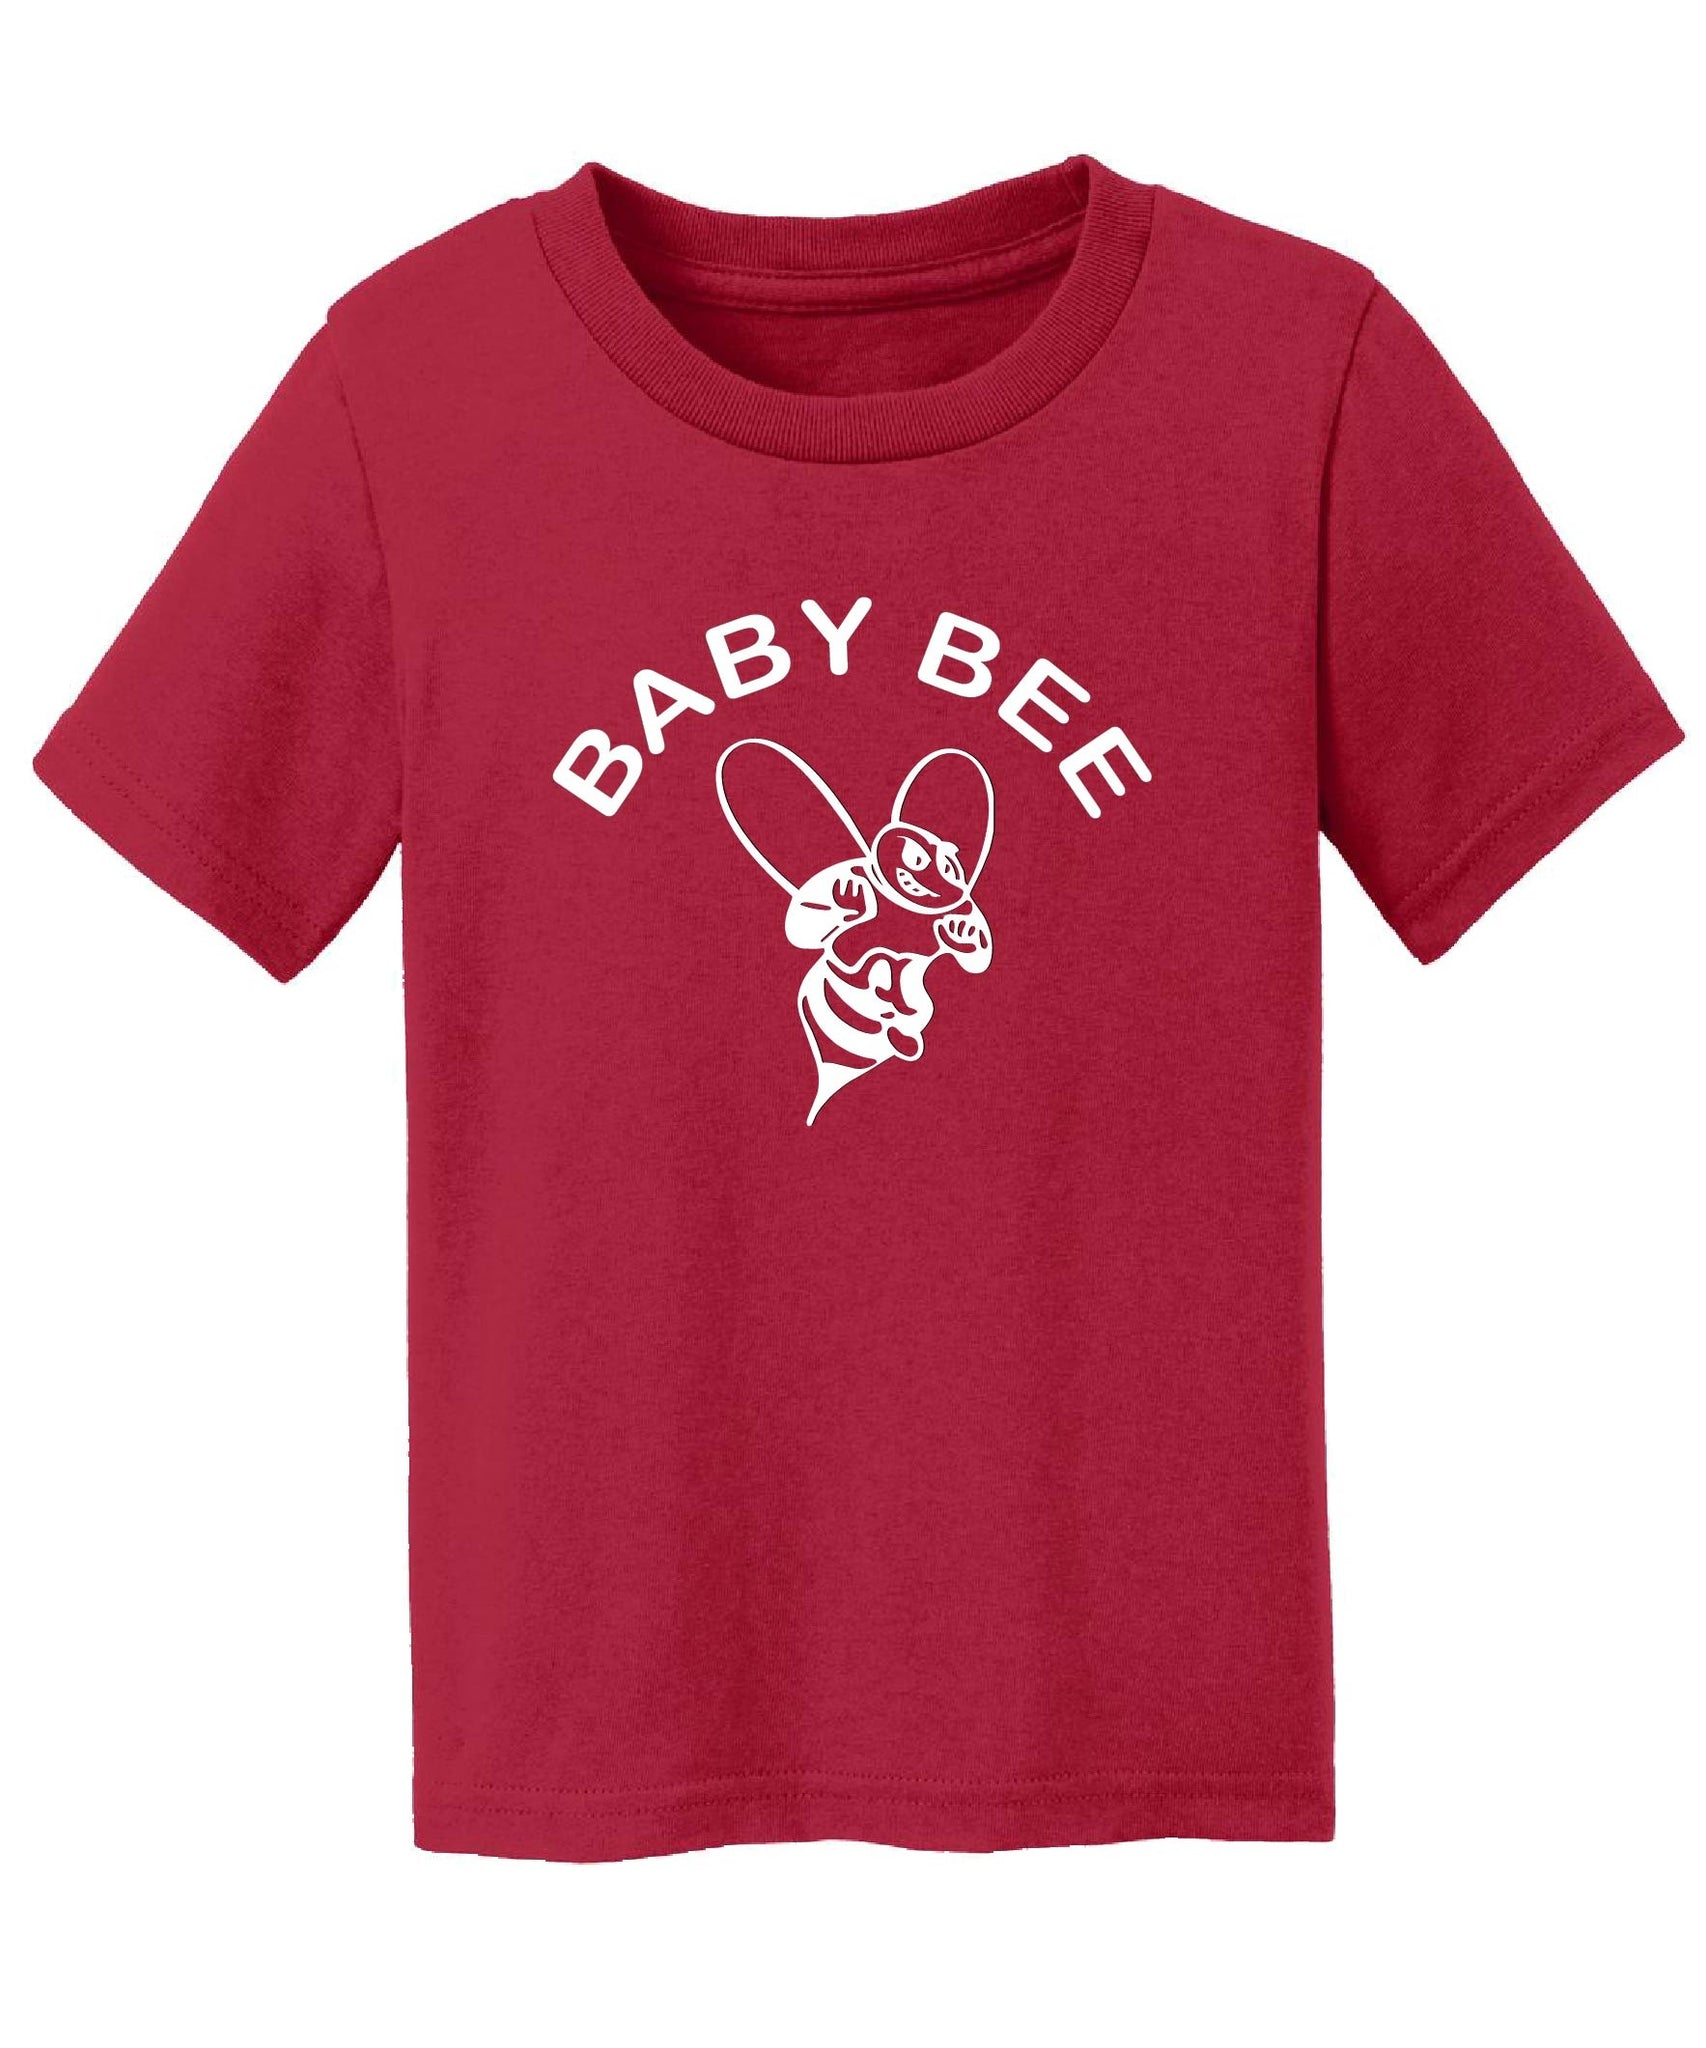 """Baby Bee"" Toddler's Tee"